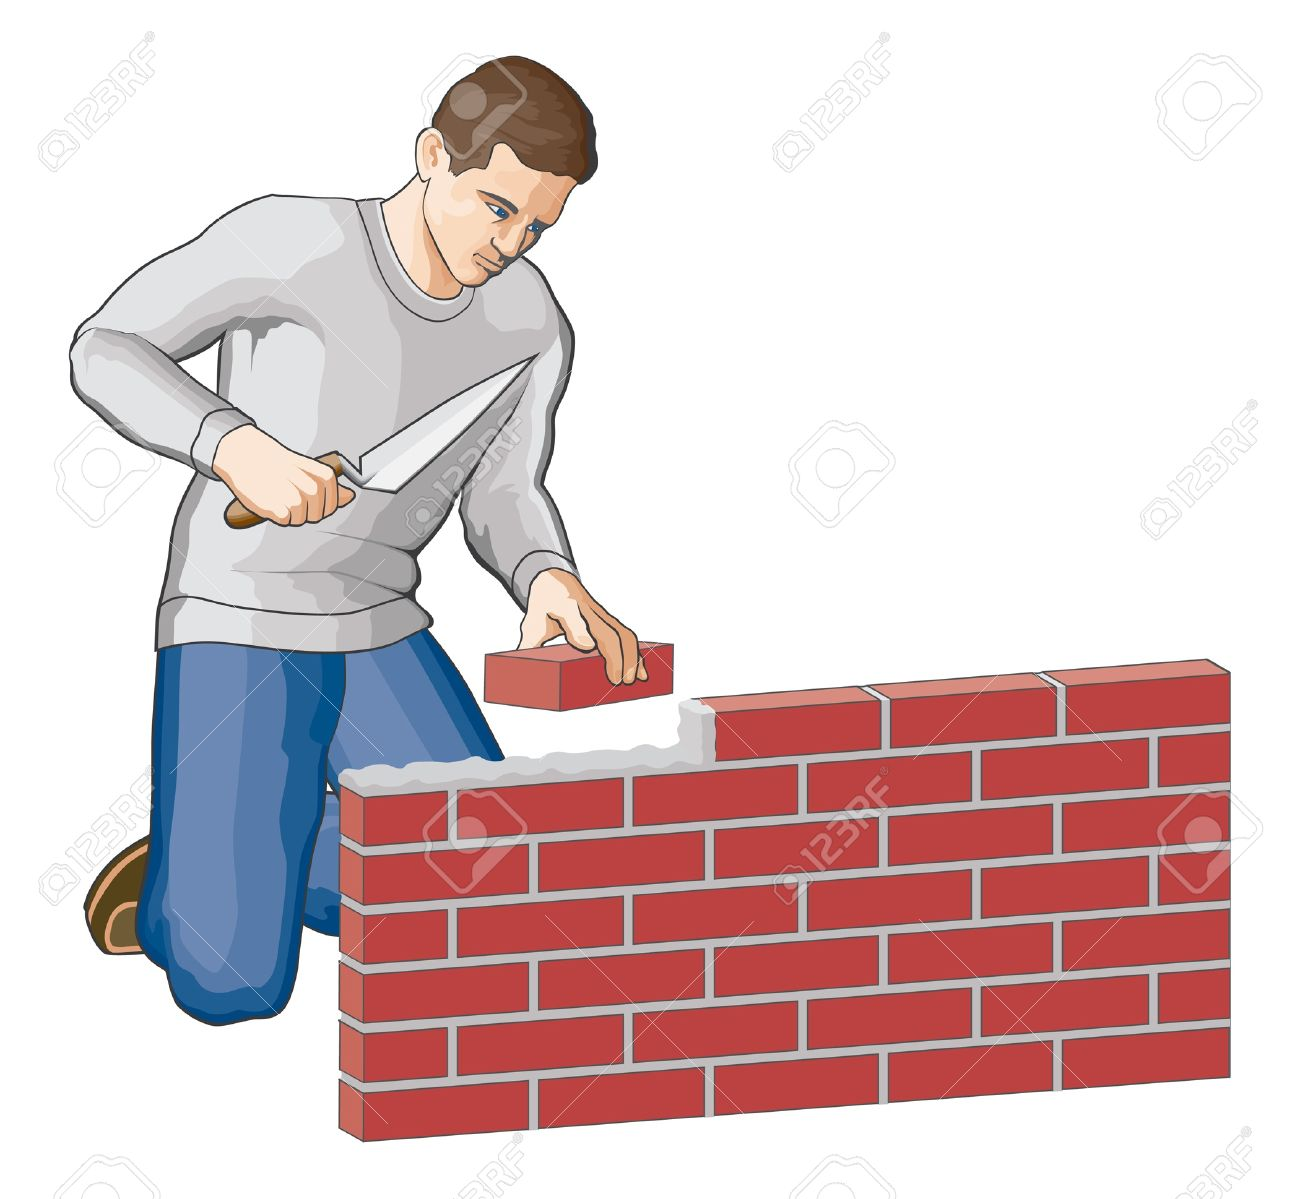 Bricklayer Is An Illustration Of A Man Building Brick Wall Stock Vector